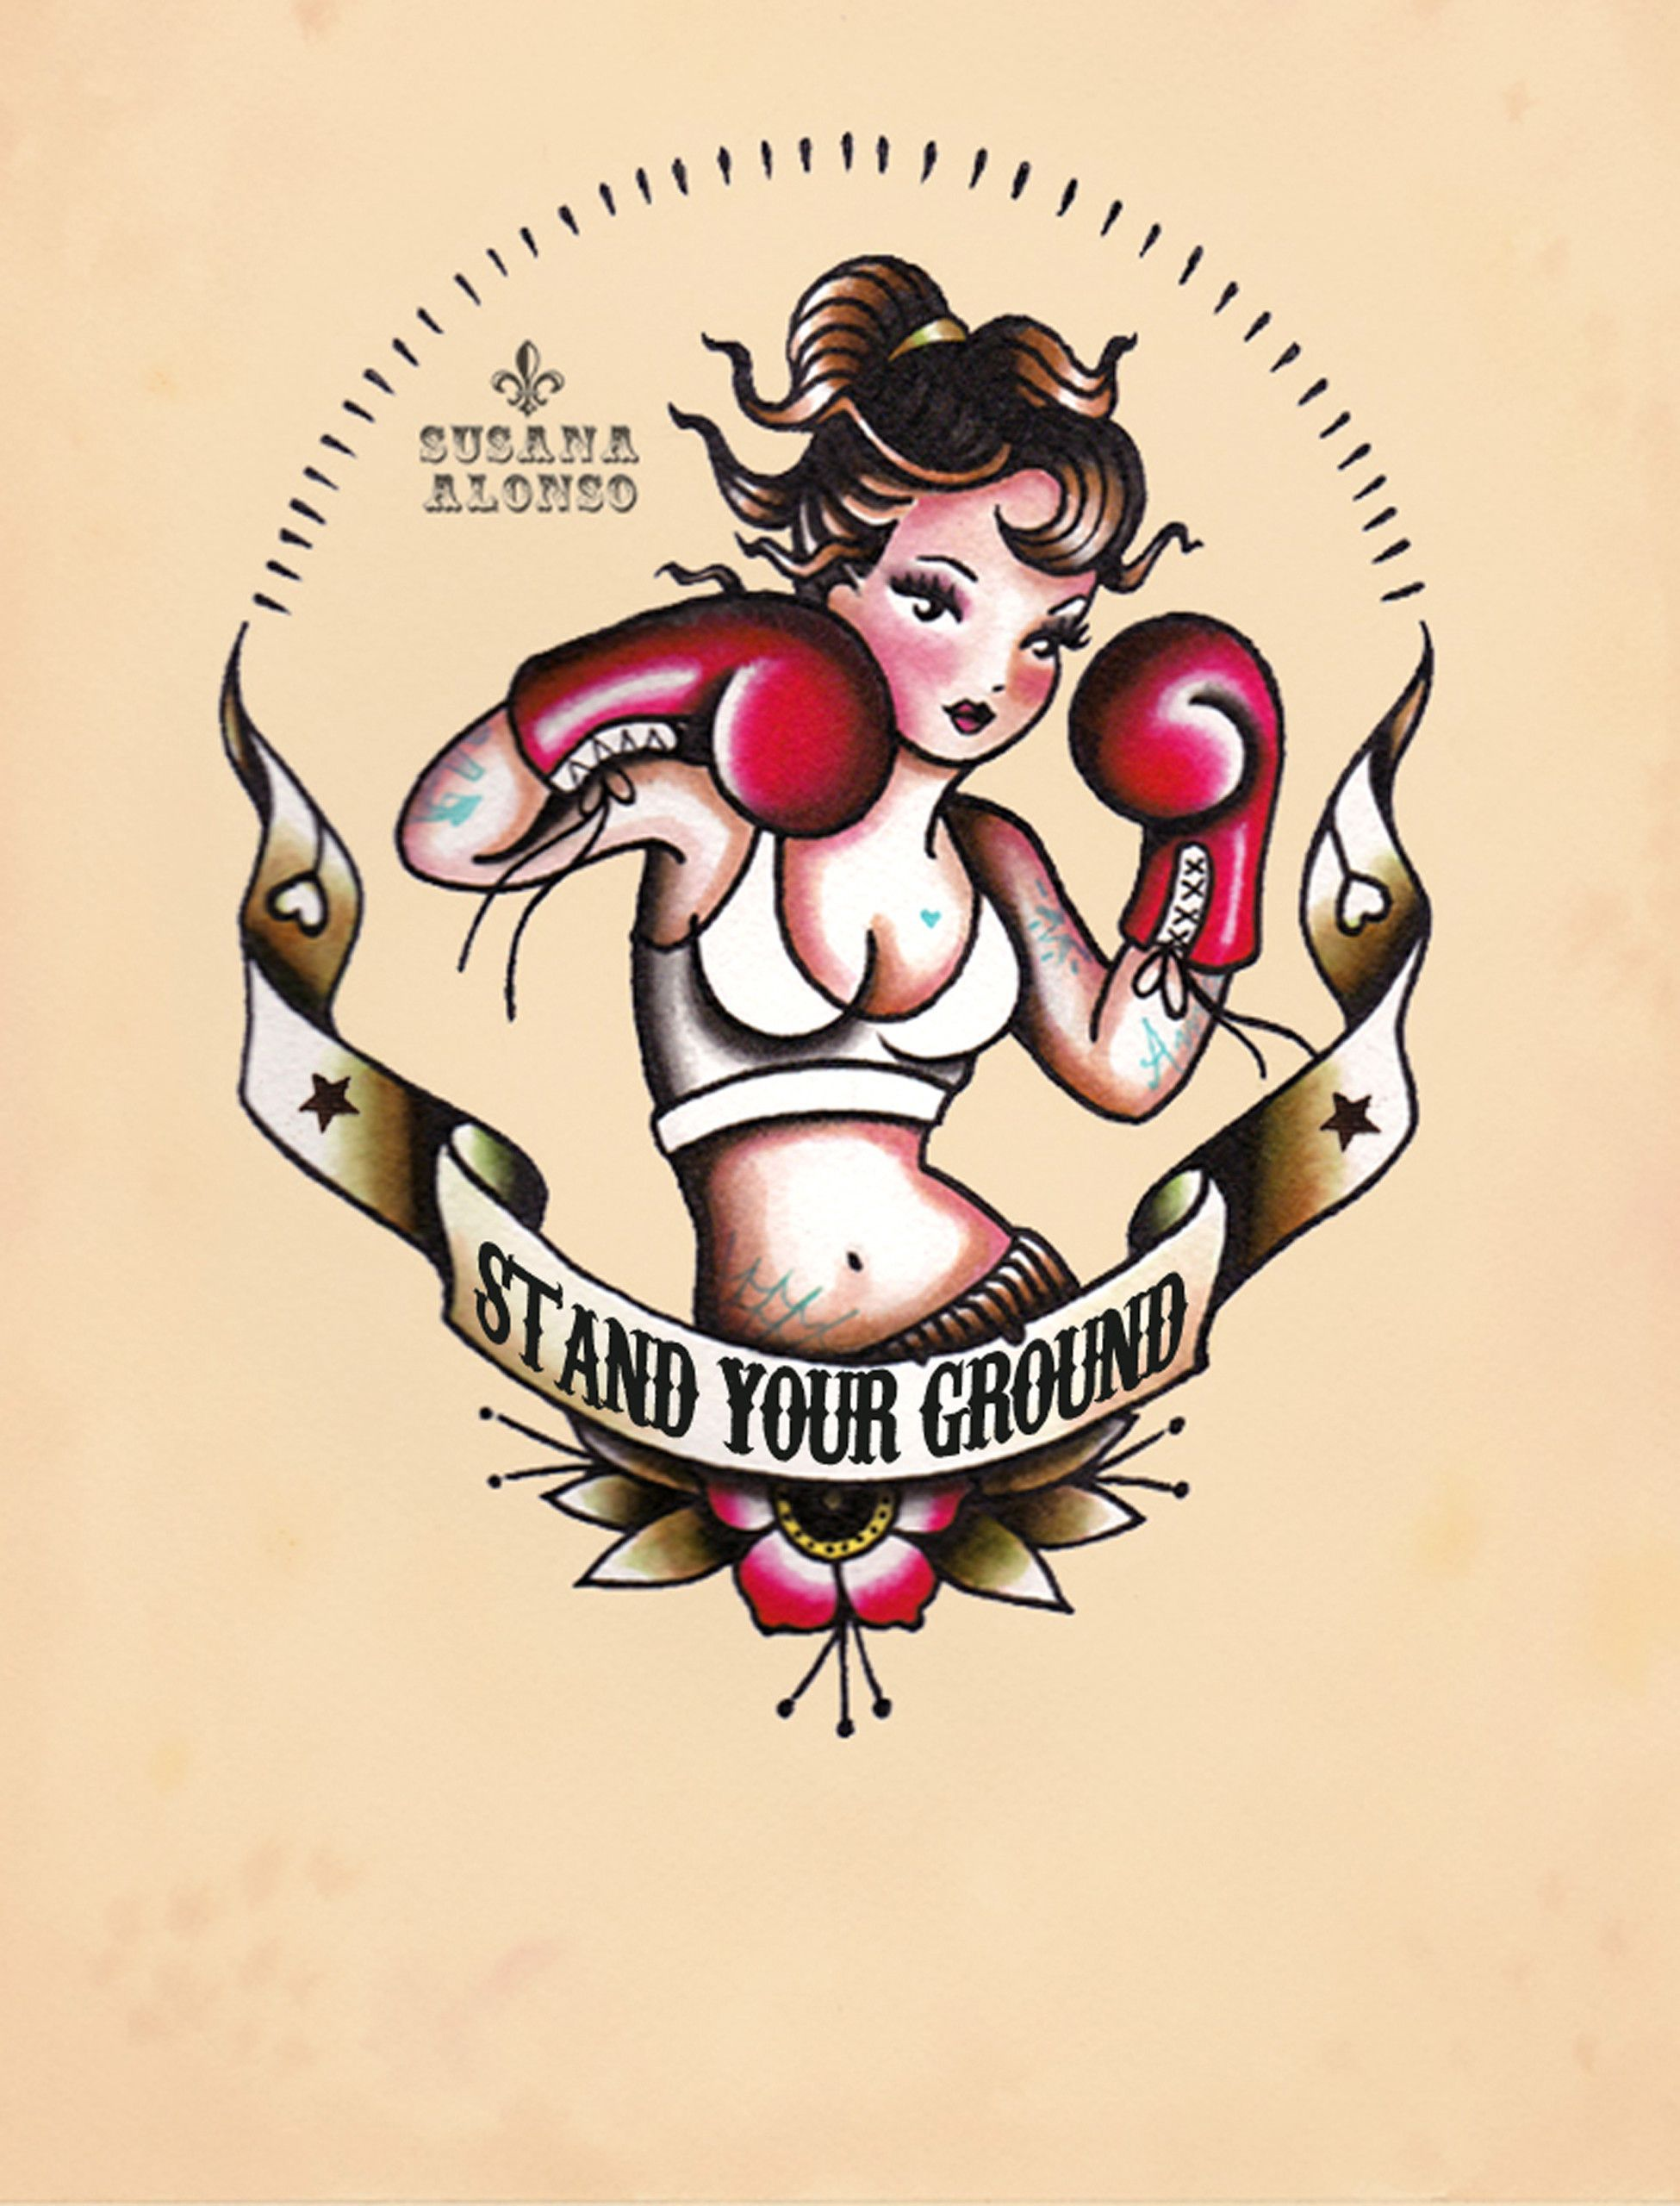 542f788ef Stand Your Ground by Susana Alonso Boxer Girl Tattoo Canvas Art Print